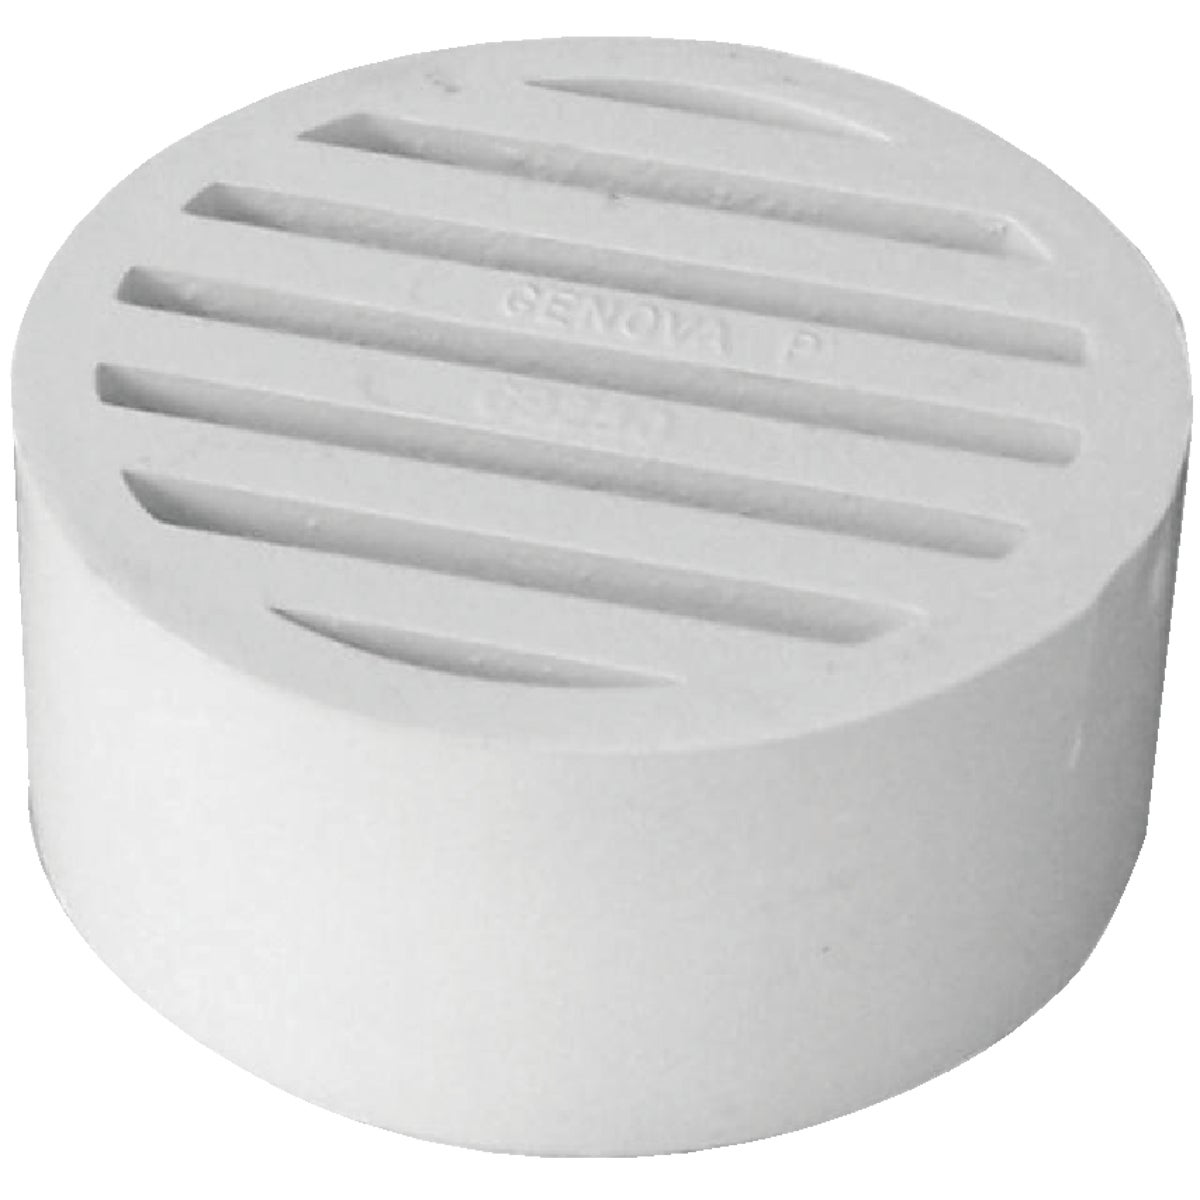 "3"" S/D PVC FLOR STRAINER - 49230 by Genova Inc"